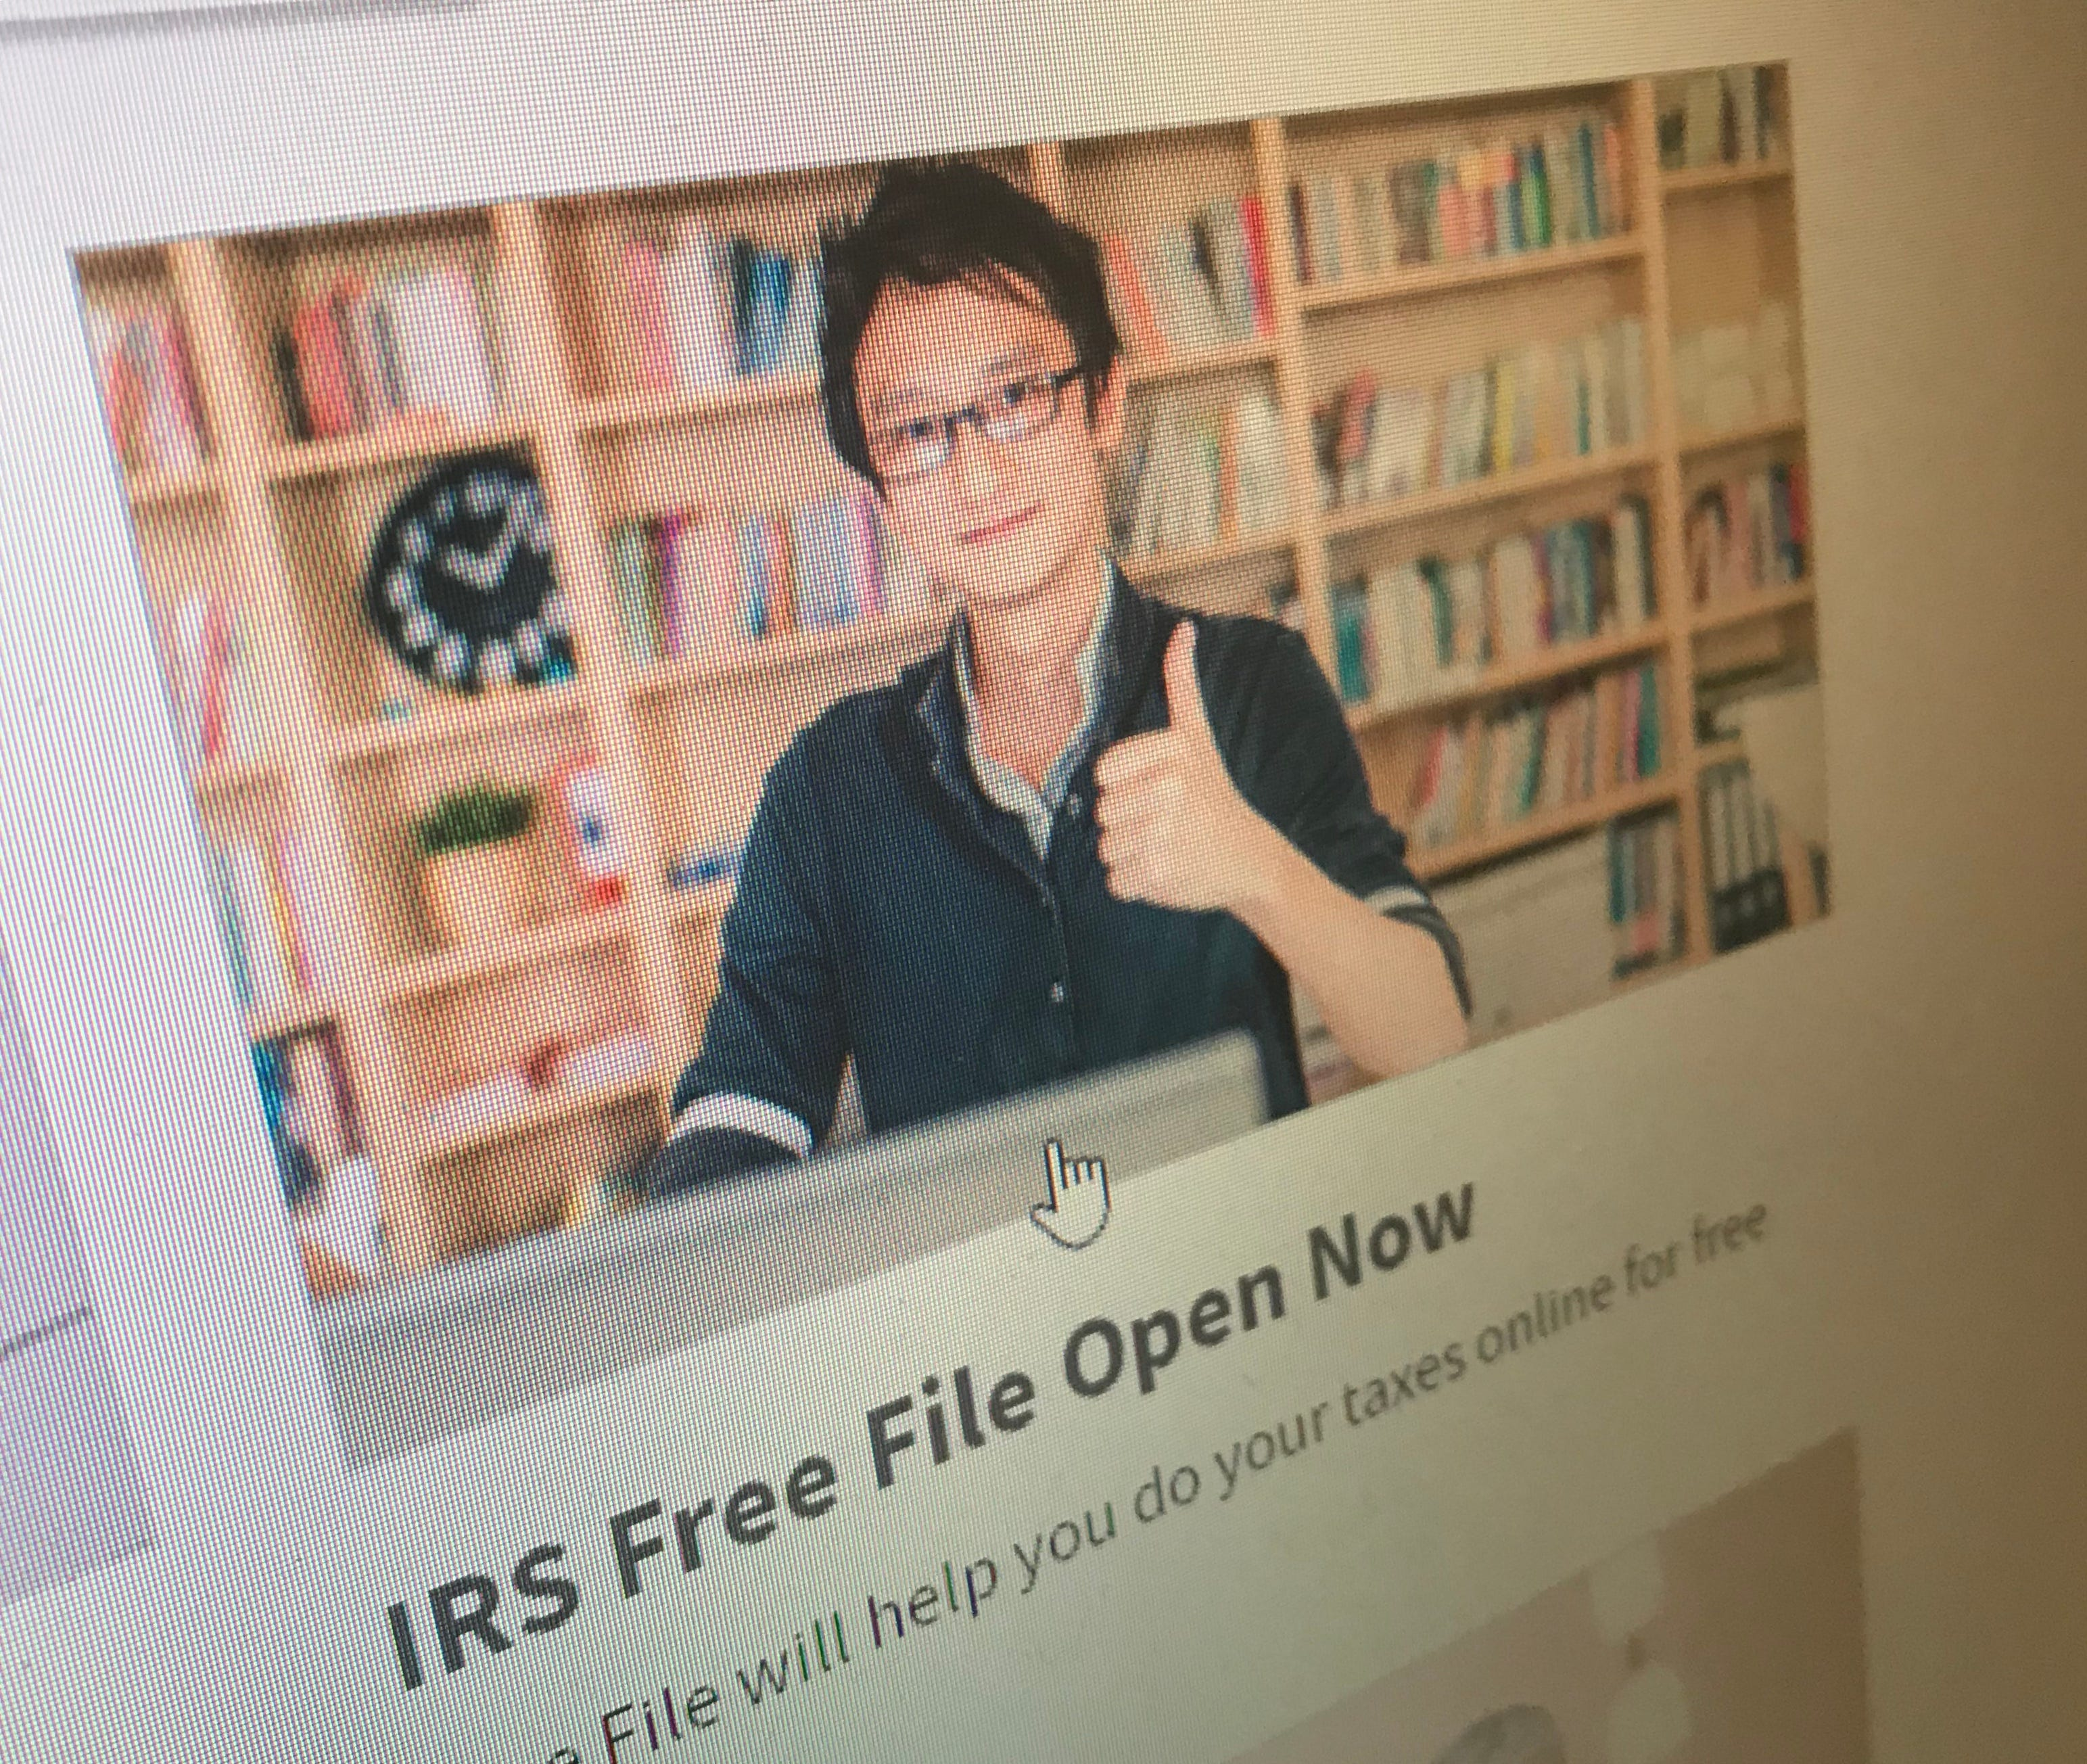 Filing your taxes for free should be easier now with Free File changes